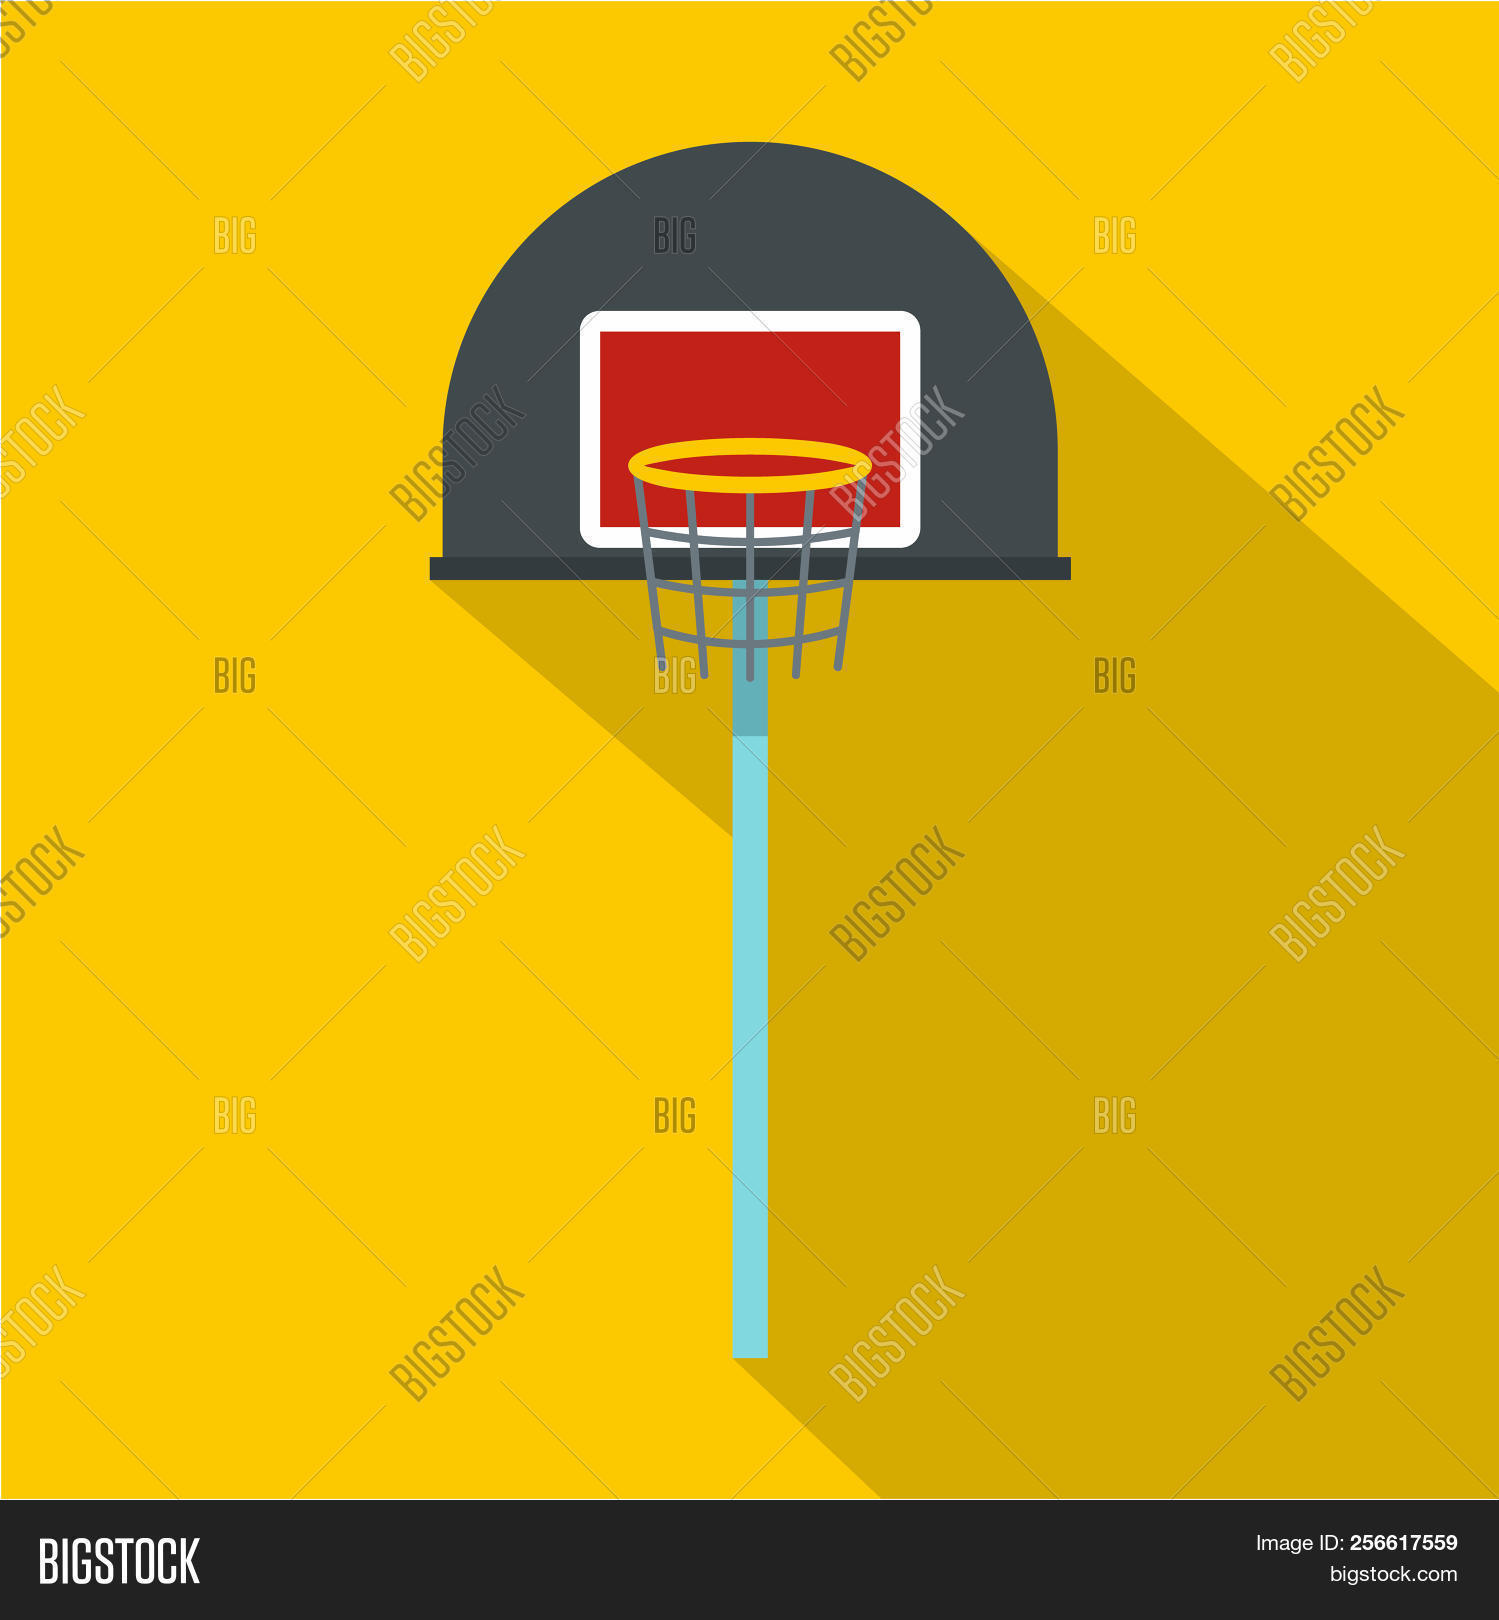 Basketball Hoop Icon Image Photo Free Trial Bigstock Diagram Flat Illustration Of For Web Isolated On Yellow Backgroun